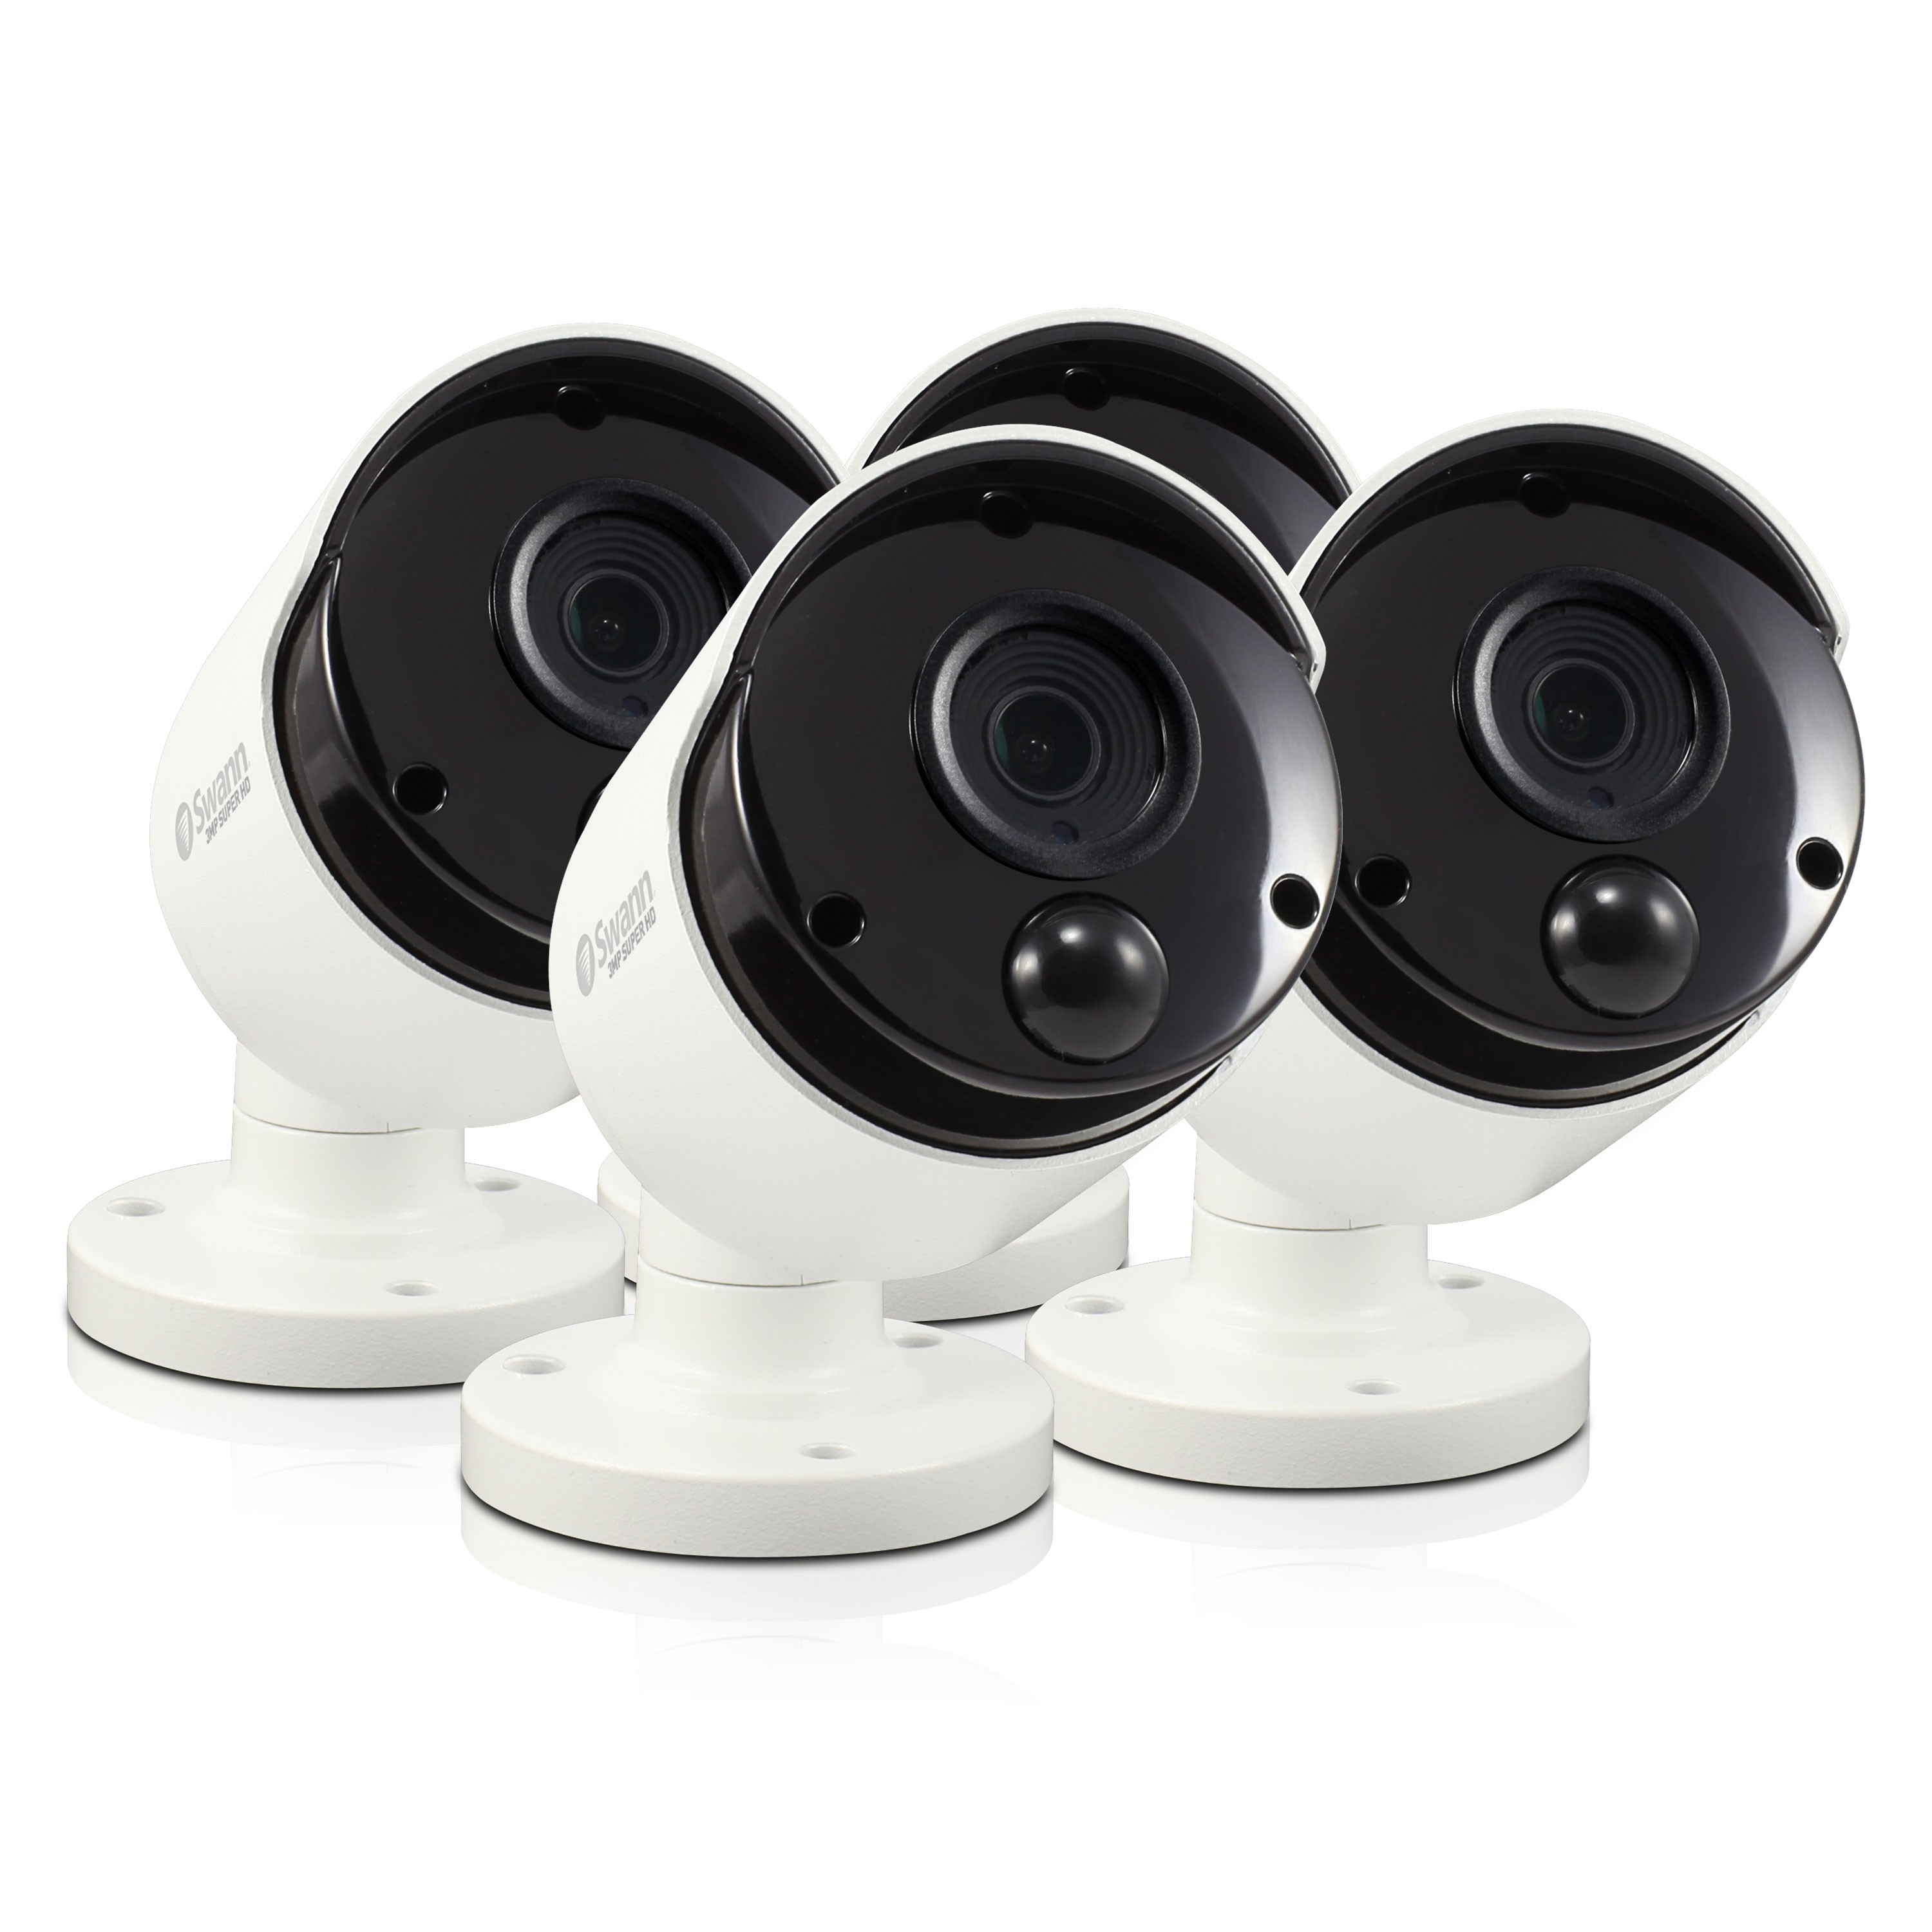 R-SRPRO-5MPMSBWB4 Swann Thermal Sensing PIR Security Camera: 5MP Super HD Bullet with IR Night Vision 4 Pack Bundle (Plain Box Packaging) -